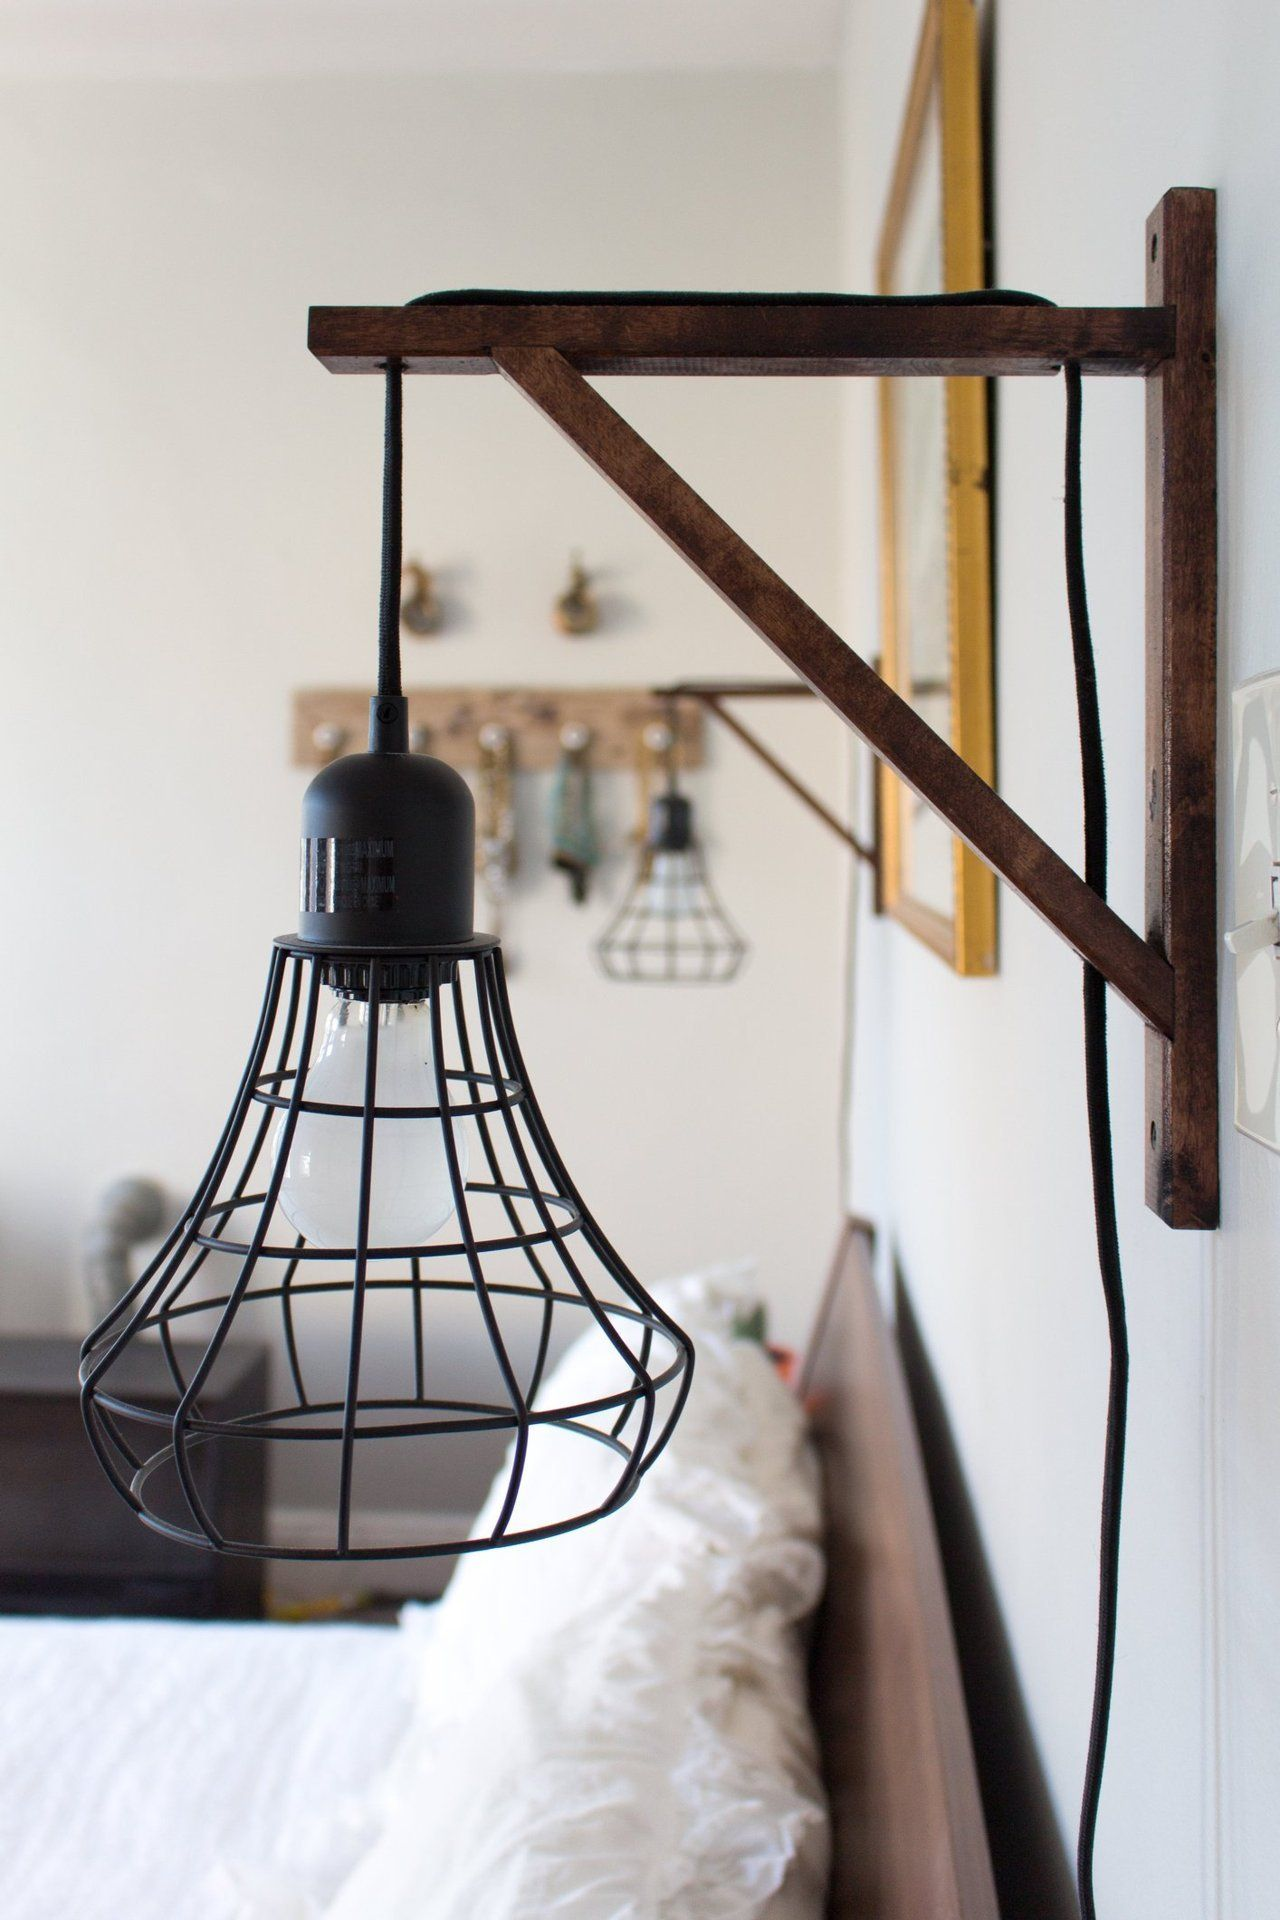 hight resolution of ikea pendant light wired through wooden support taylor alana s carefully crafted hoboken apartment